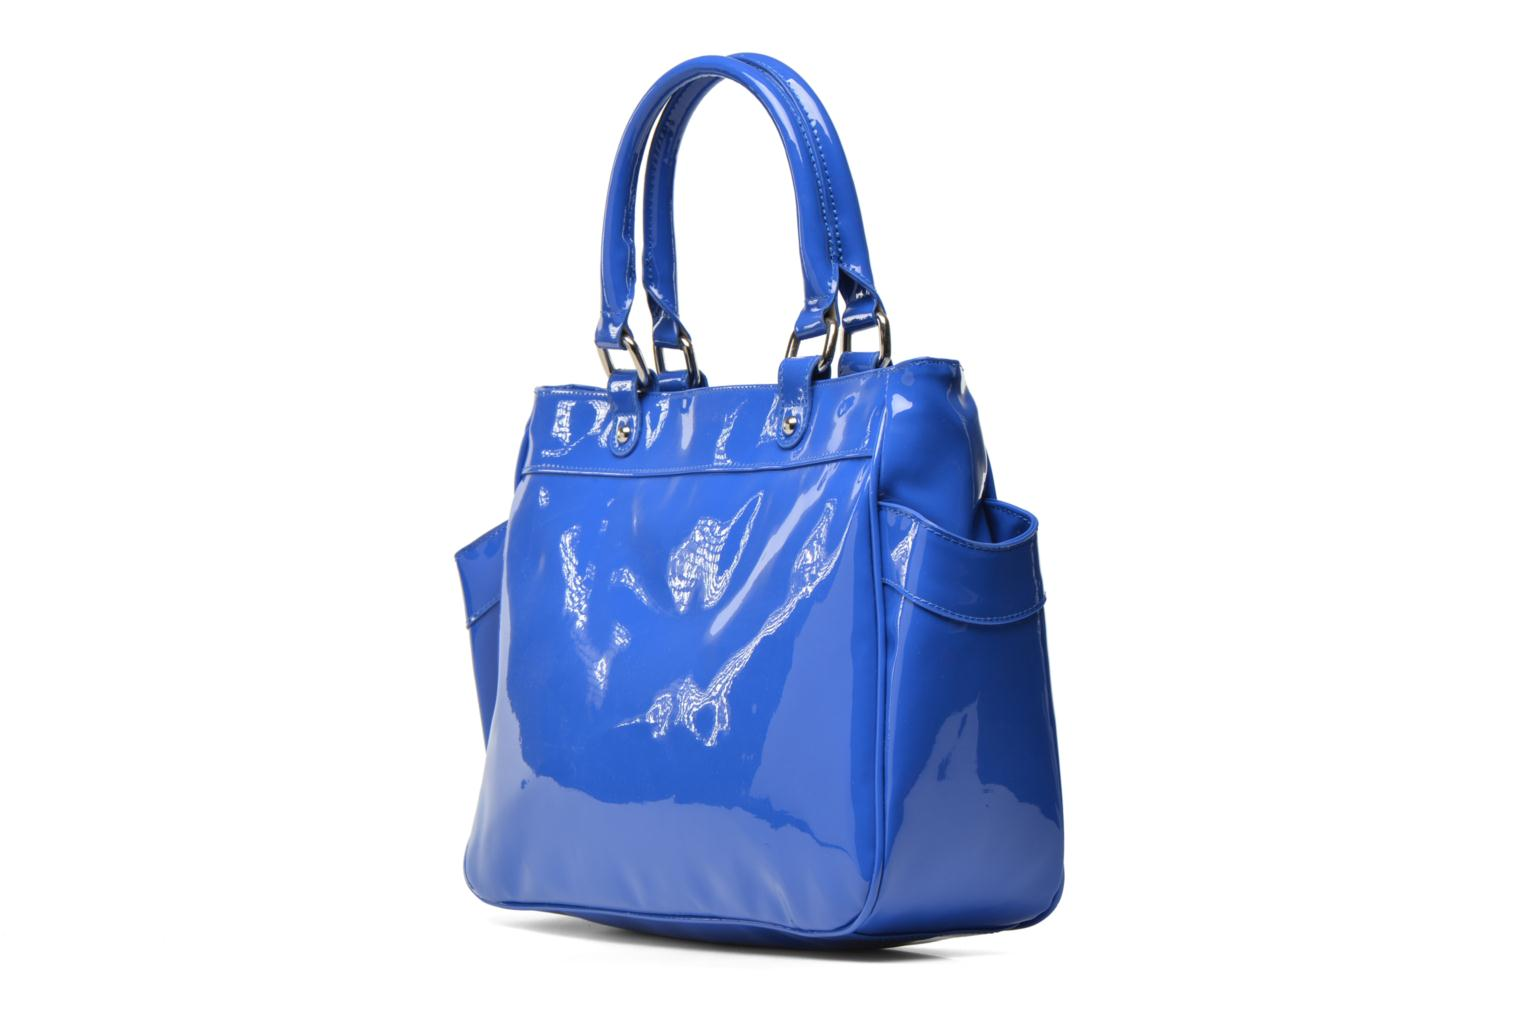 Handbags Les P'tites Bombes Sac Vernis Blue view from the right